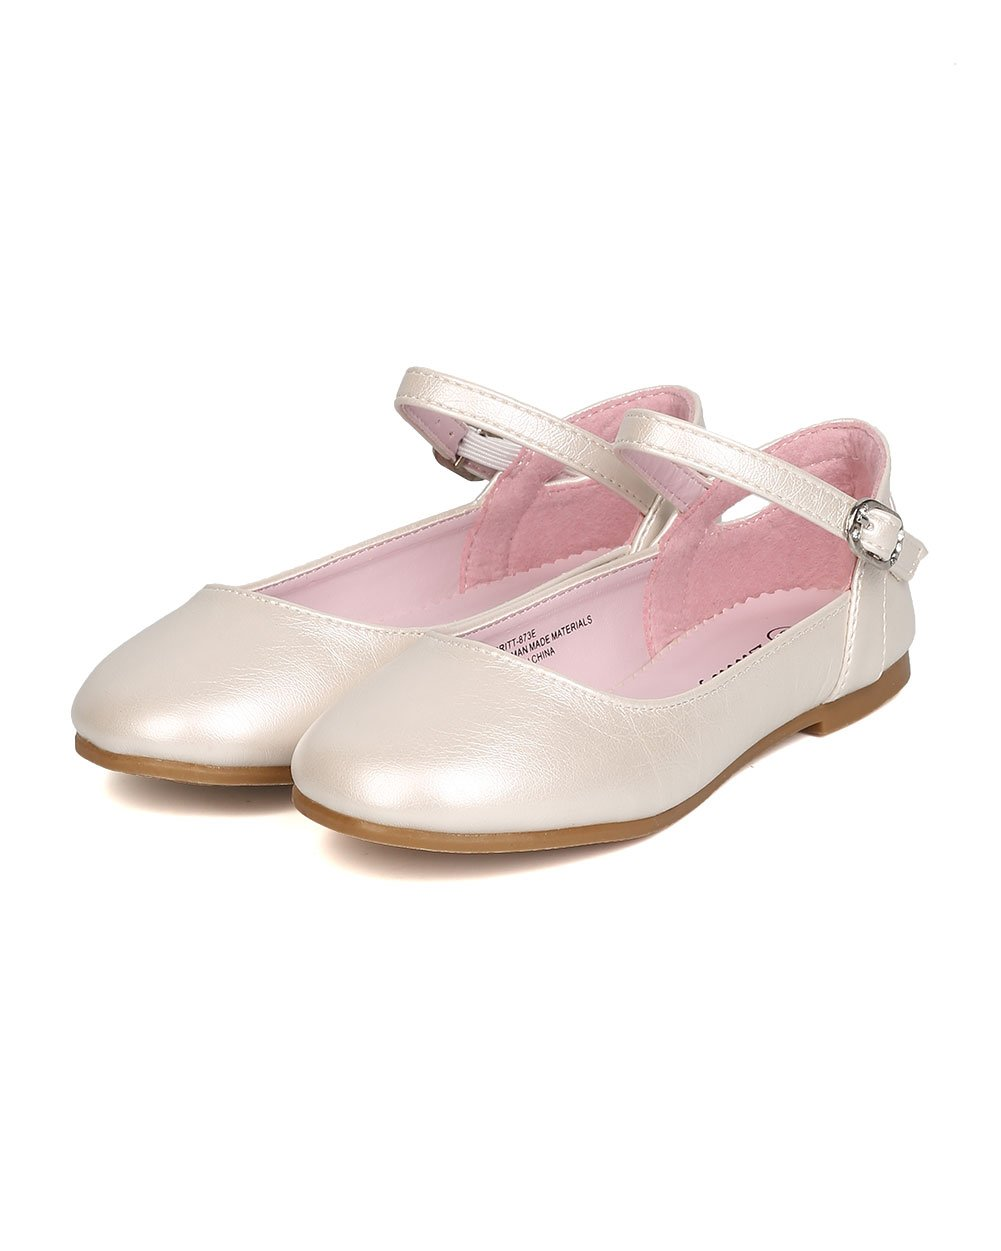 Girls Leatherette Ankle Strap Cut Out Ballet Flat GB42 - Ivory (Size: Little Kid 1) by Little Angel (Image #5)